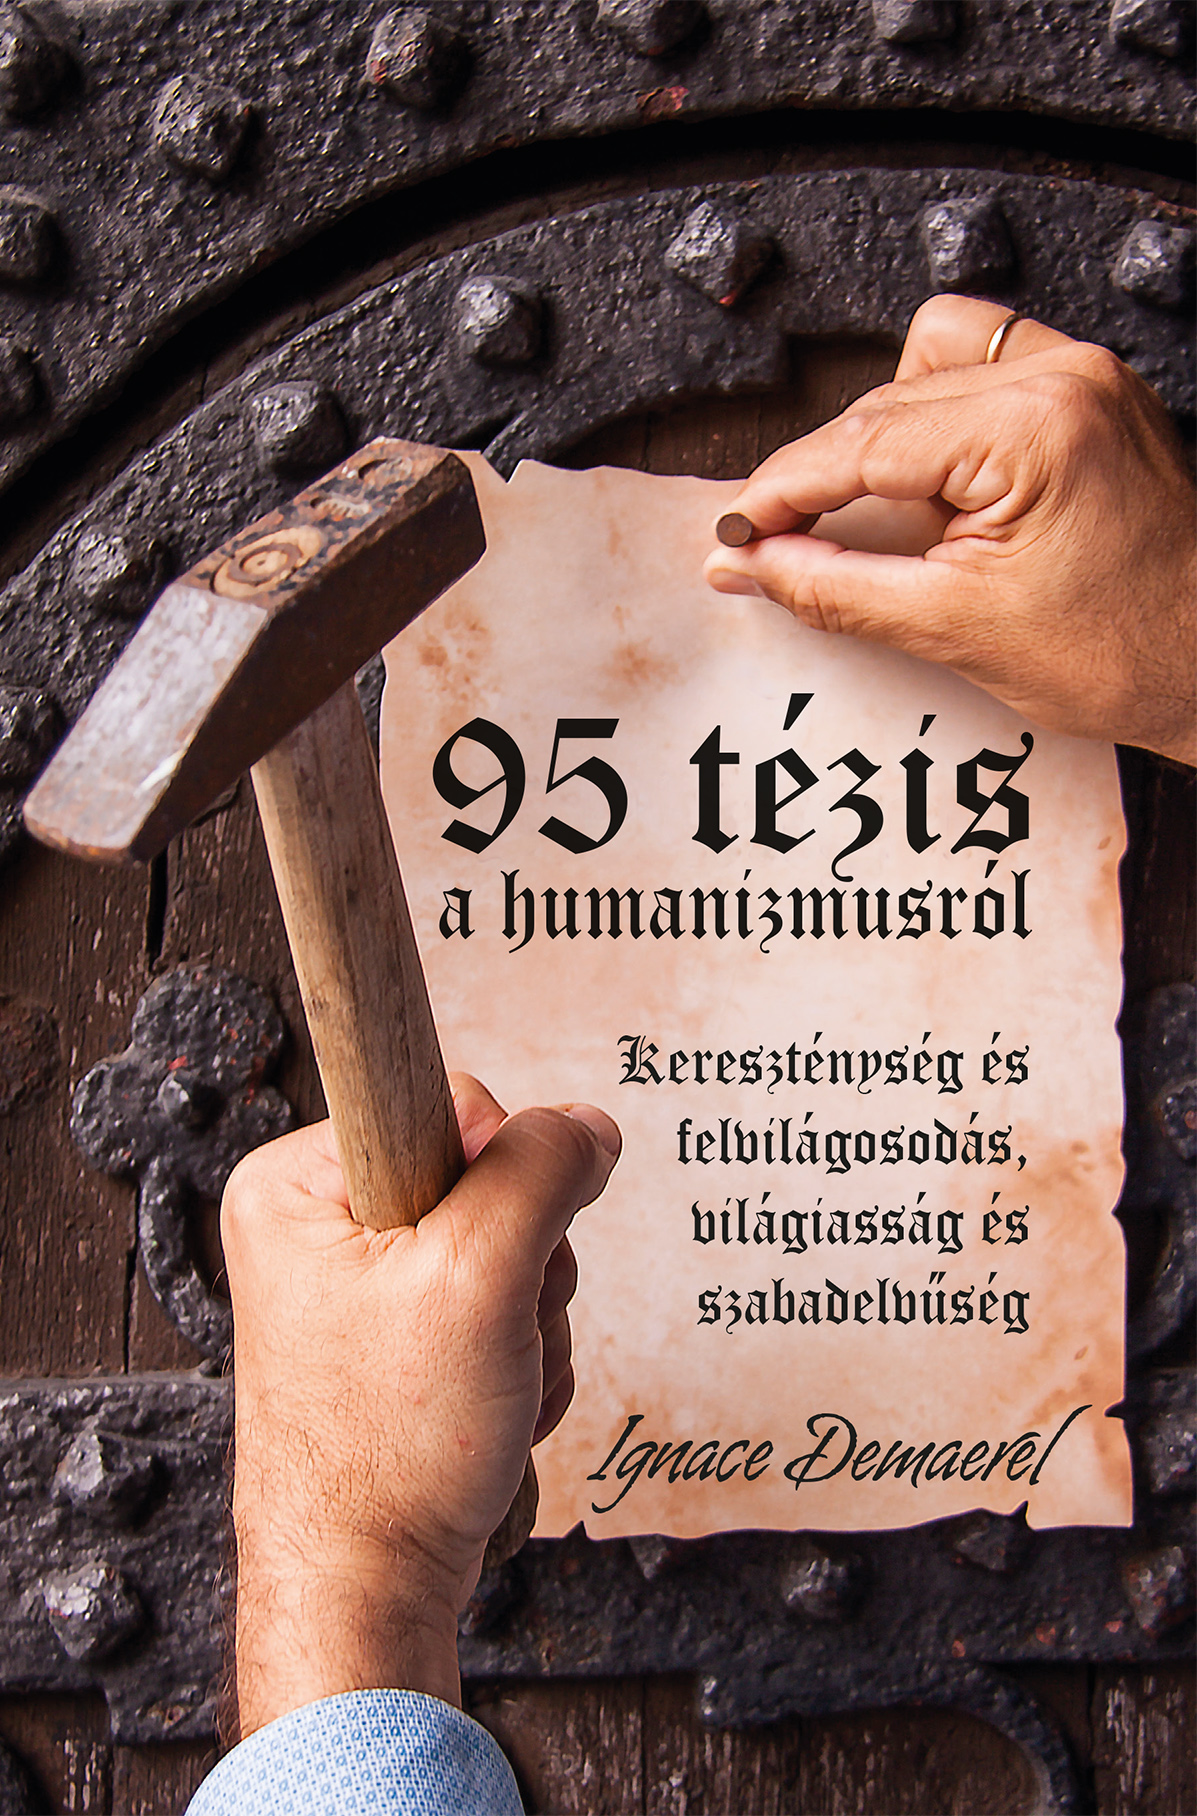 Hungarian Translation Of 95 Theses On Humanism Has Been Published